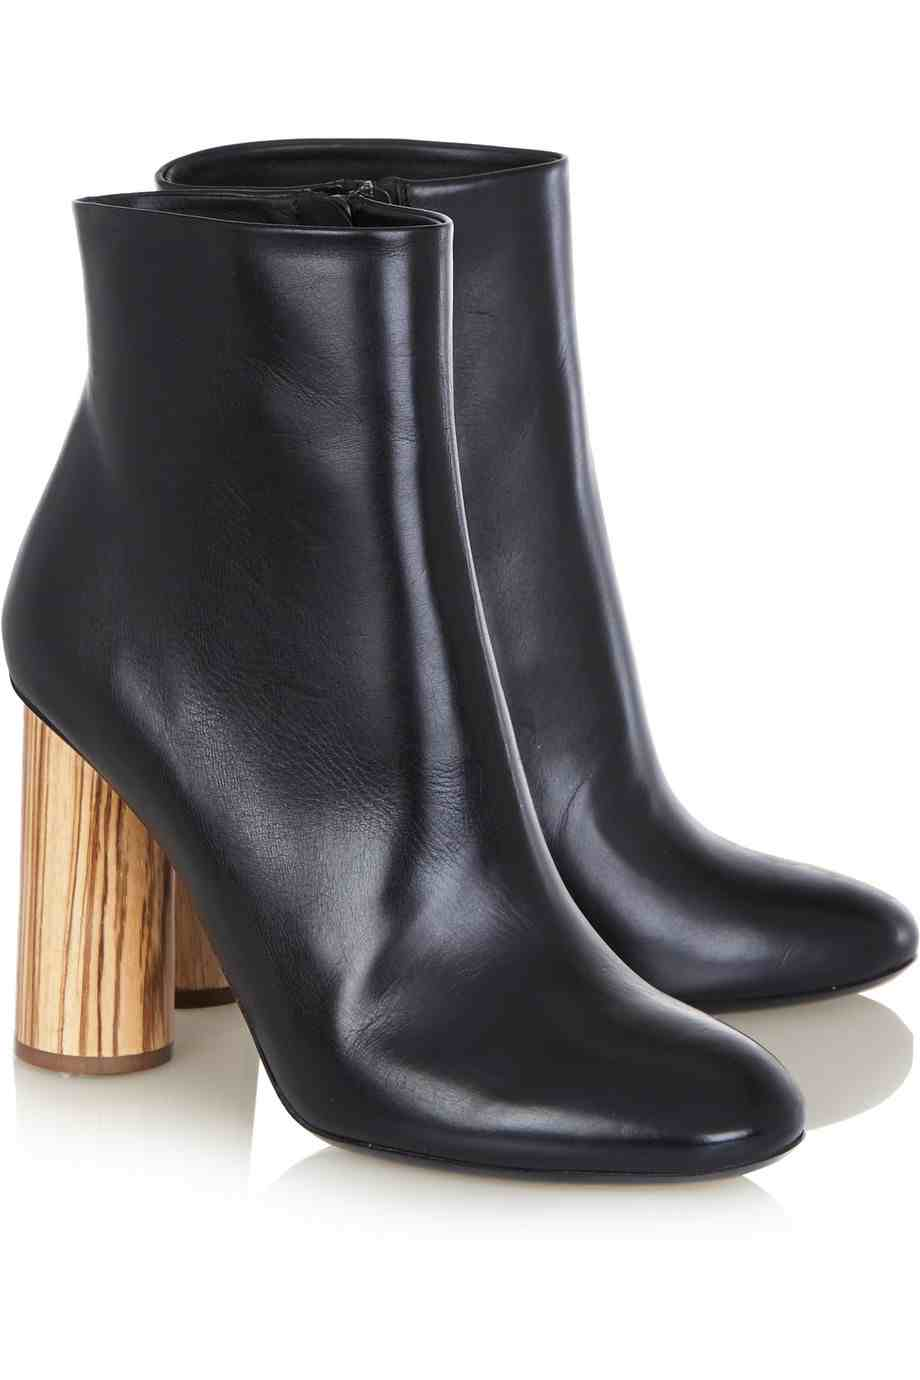 Proenza Schouler - Bottines (695 €)